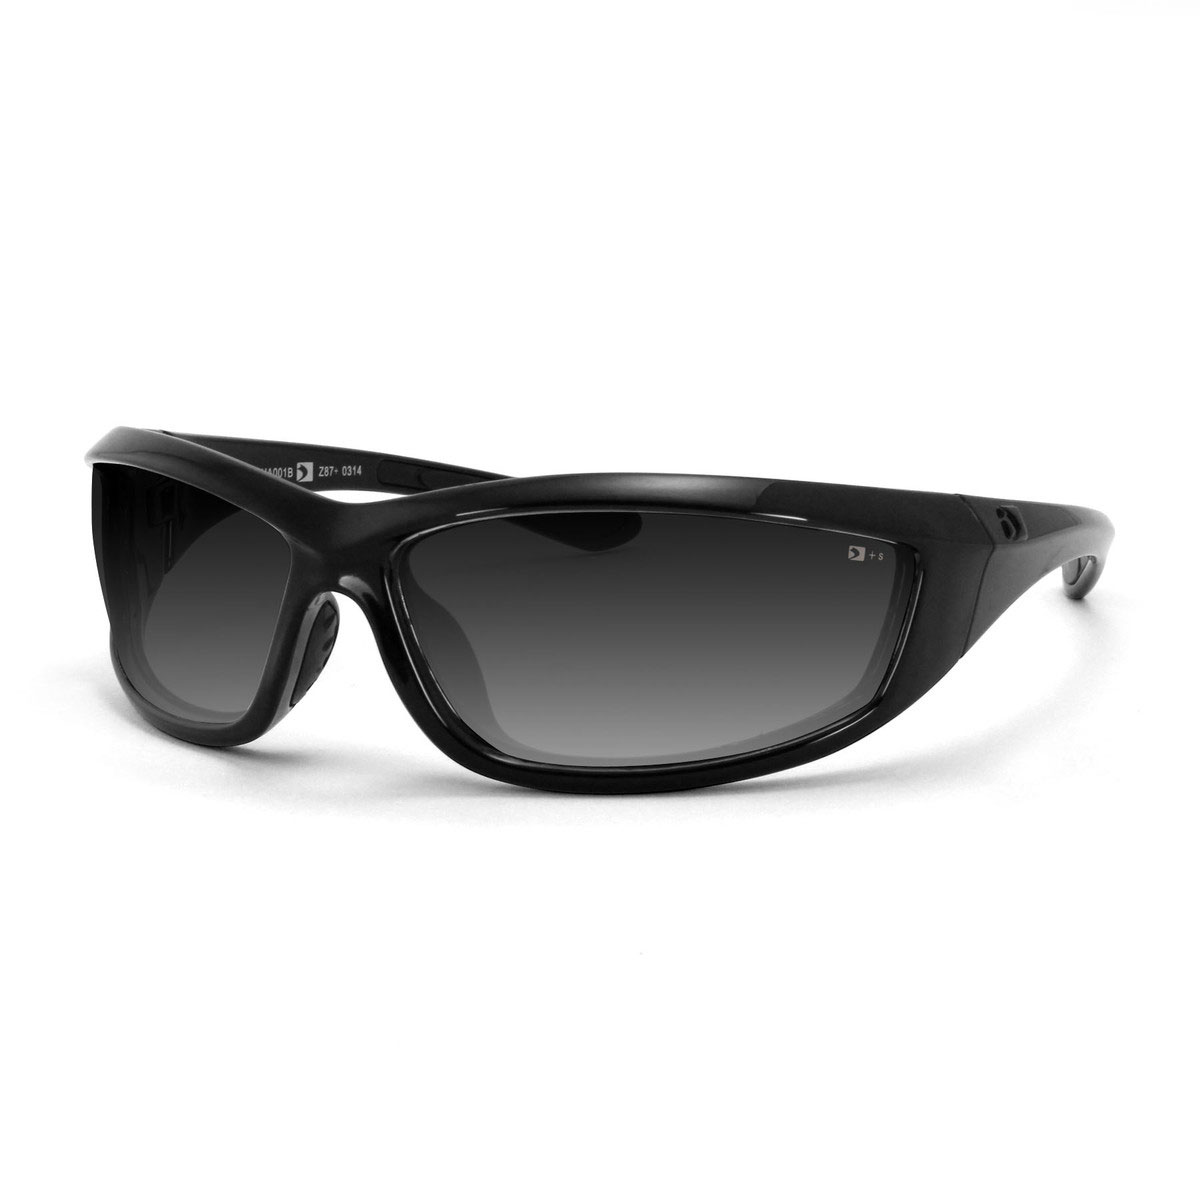 Bobster Charger Sunglasses with Smoke Lenses